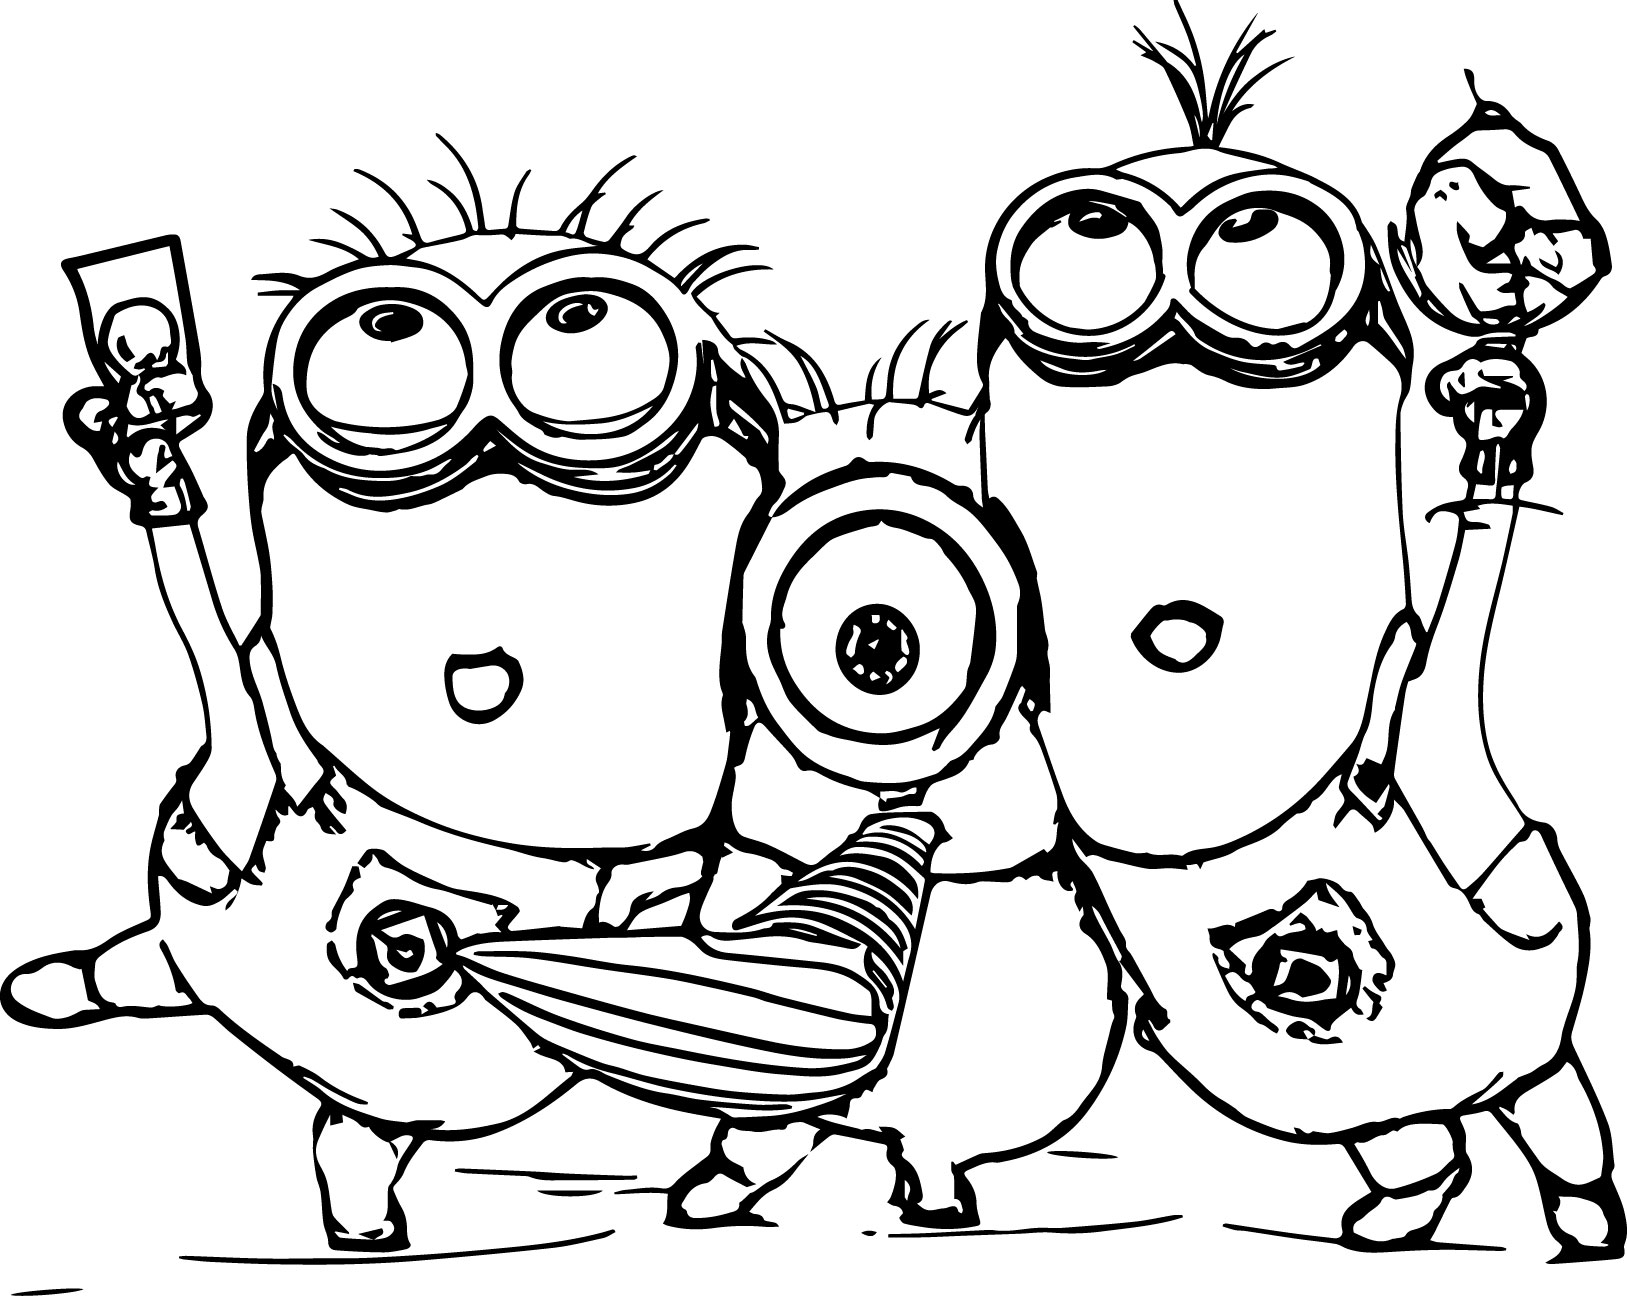 1627x1296 Minion Coloring Pages Minion Coloring Pages Free Download